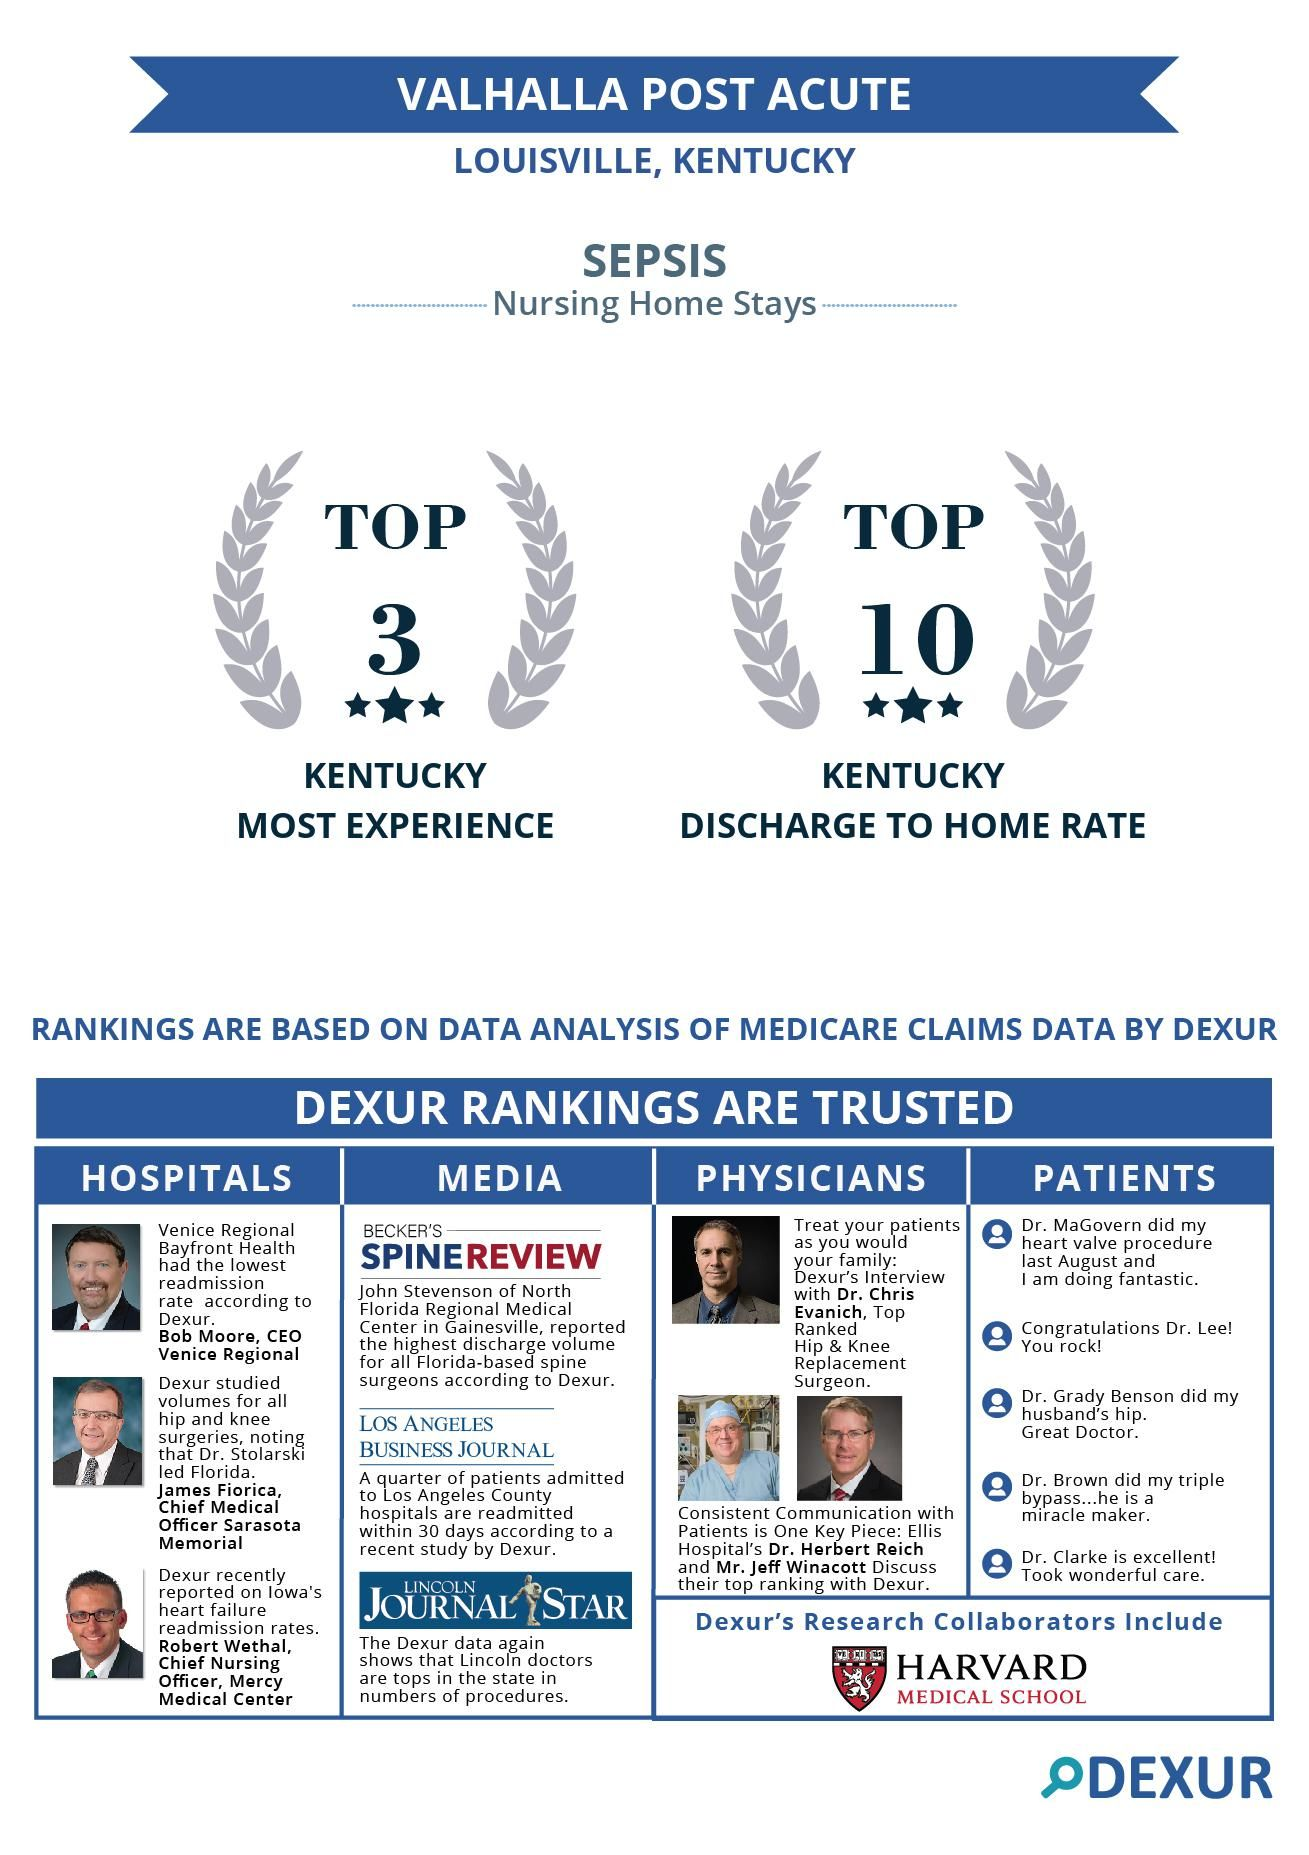 Valhalla Post Acute - Top ranked Nursing Home in handling Sepsis patients in Kentucky Valhalla Post Acute, Louisville, KY is among the most experienced Nursing Homes in handling Sepsis patients in Kentucky